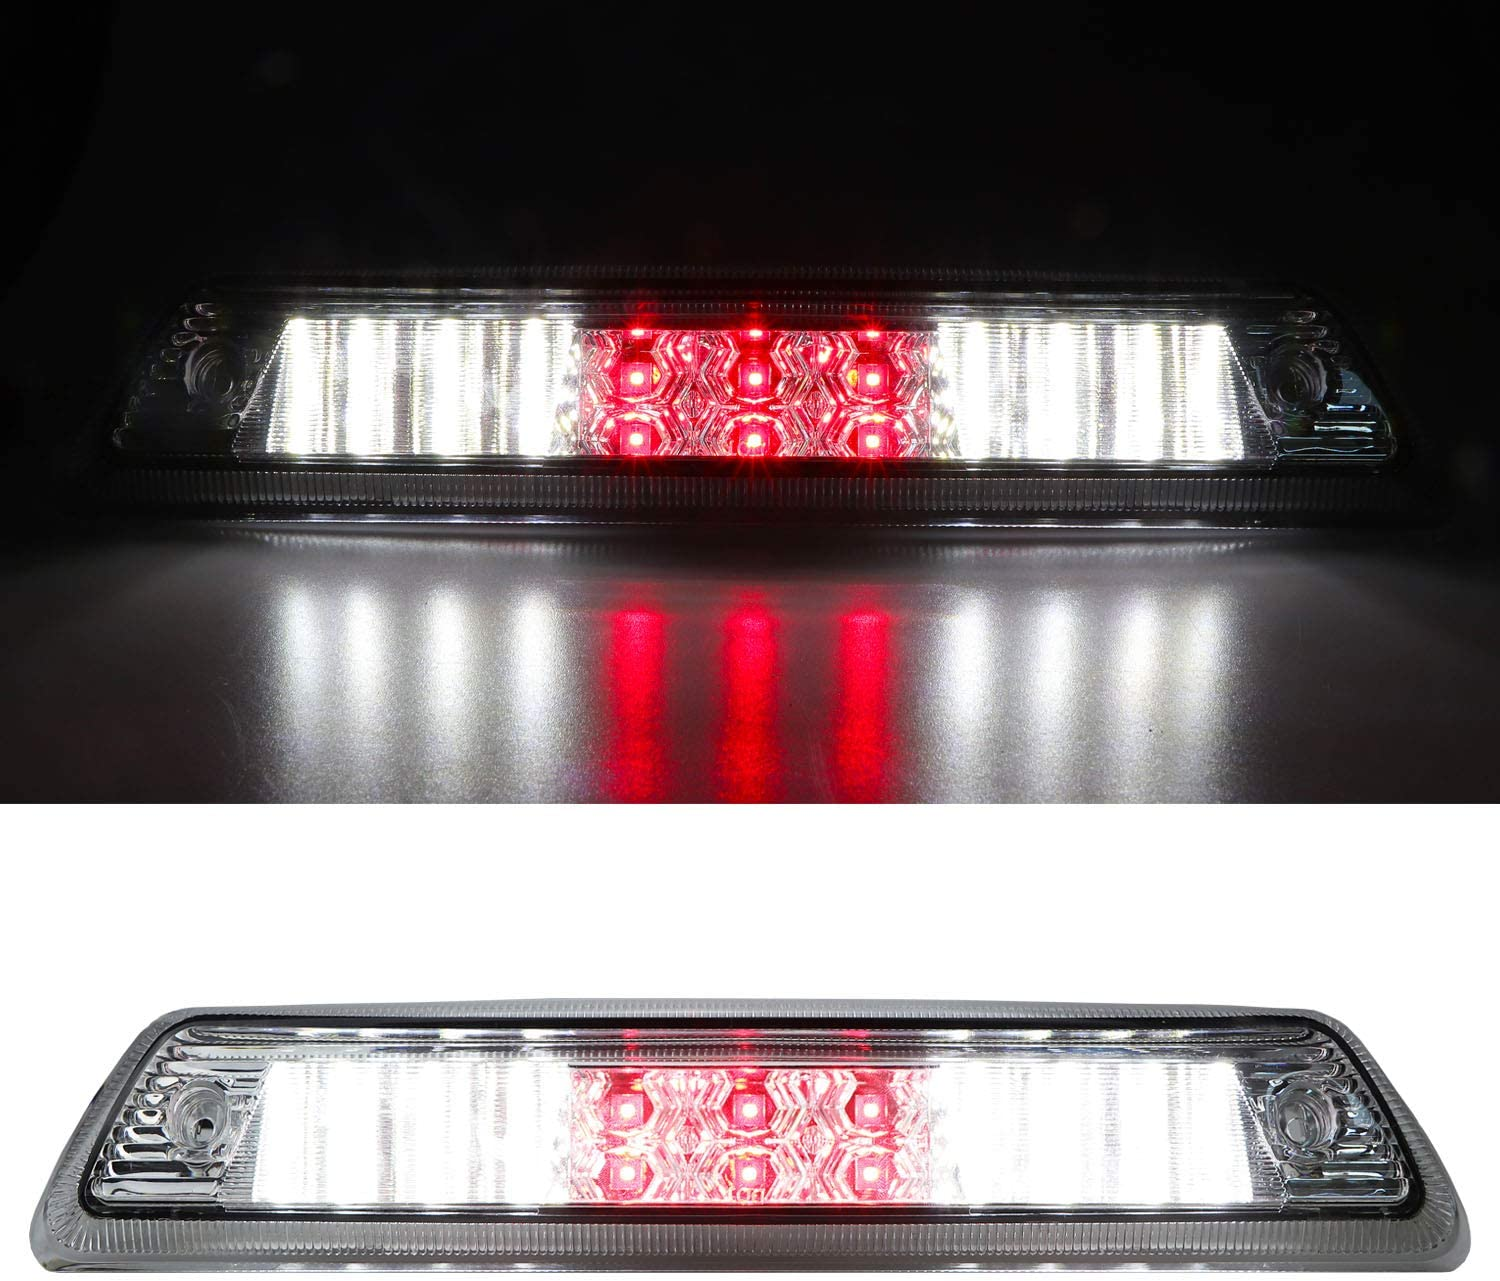 Smoked Lens NPAUTO LED Third 3rd Brake Light Cargo Lamp Replacement for Ford F150 2009 2010 2011 2012 2013 2014 High Mount Stop Light Assembly